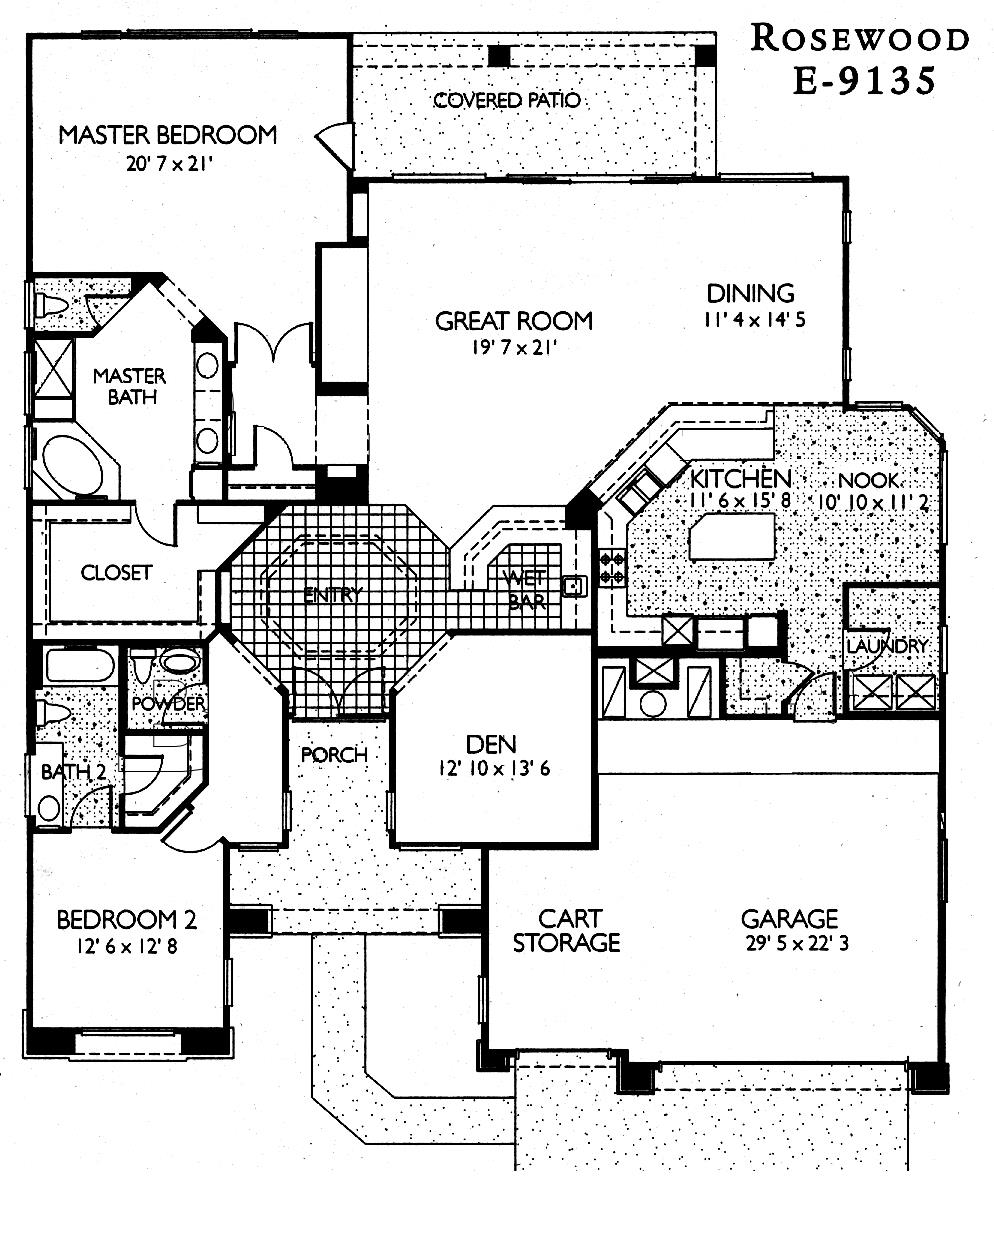 Sun City Grand Rosewood floor plan, Del Webb Sun City Grand Floor Plan Model Home House Plans Floorplans Models in Surprise Phoenix Arizona AZ Ken Meade Realty Kathy Anderson